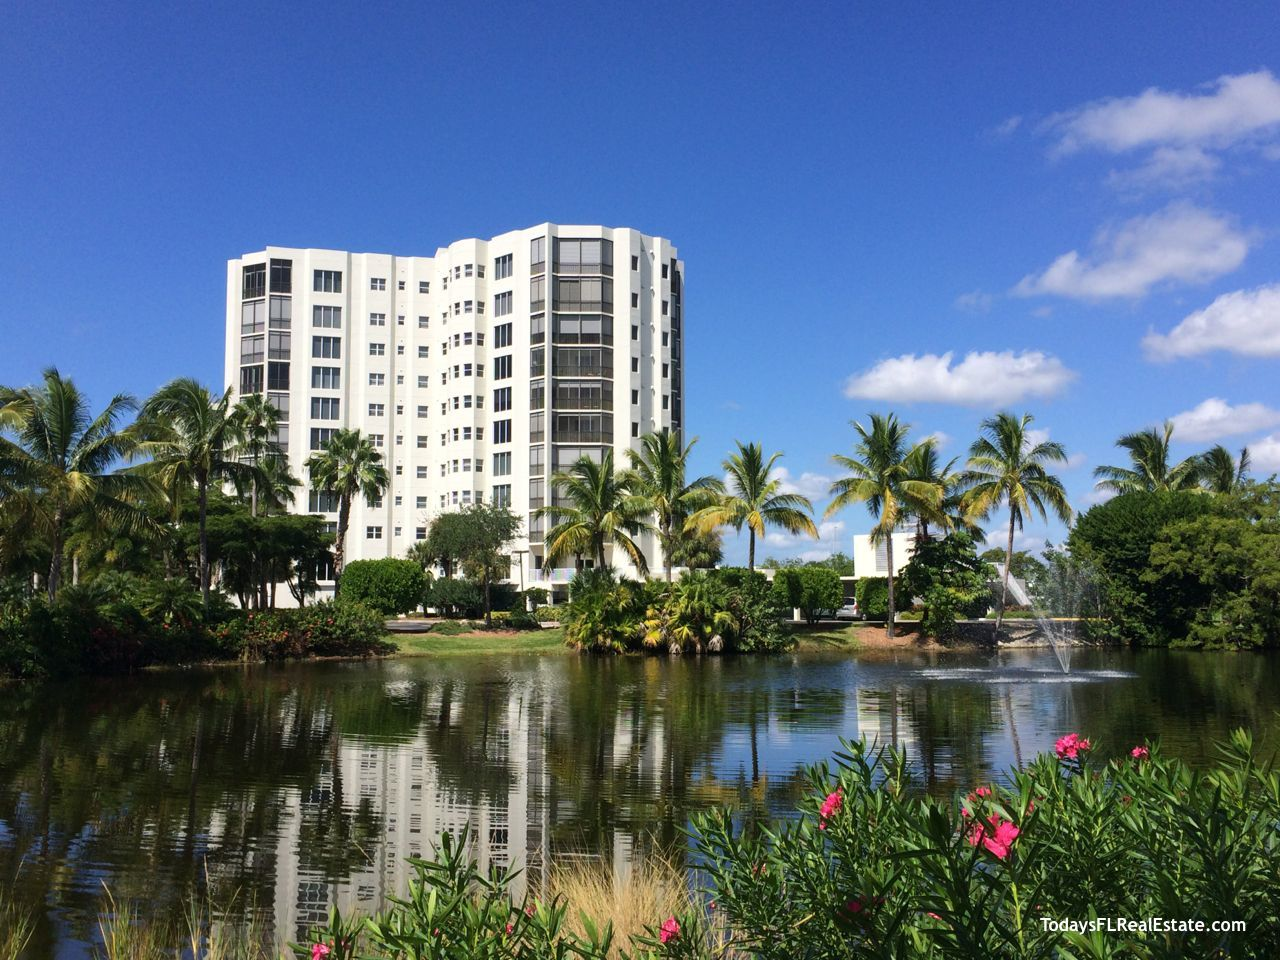 Waterside condos fort myers beach florida, fort myers beach homes for sale, waterfront condos ft myers beach